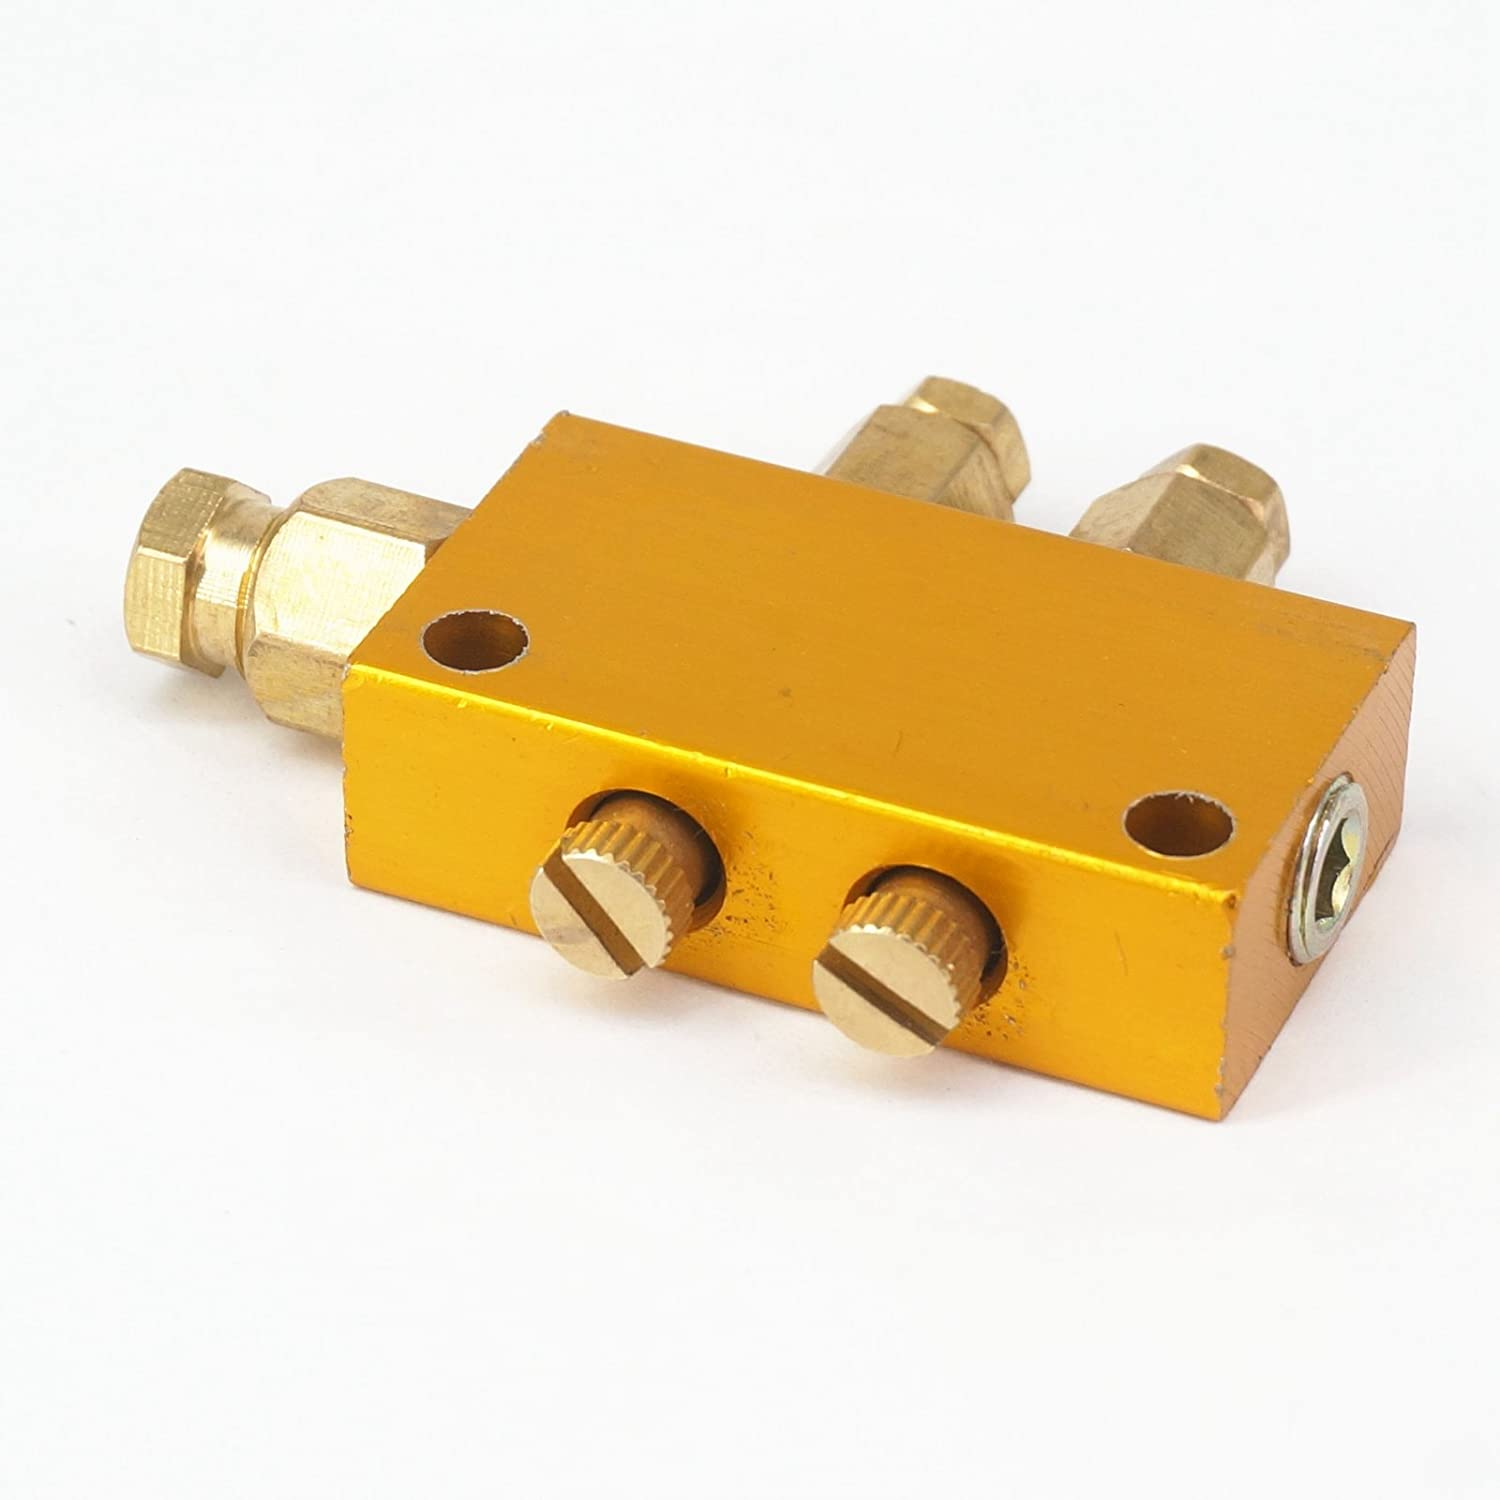 Sorekarain Brass 2 Way Adjustable Lube Oil Piston Distributor Value Manifold Block 6Mm Inlet 4Mm Out for Centralized Lubrication System